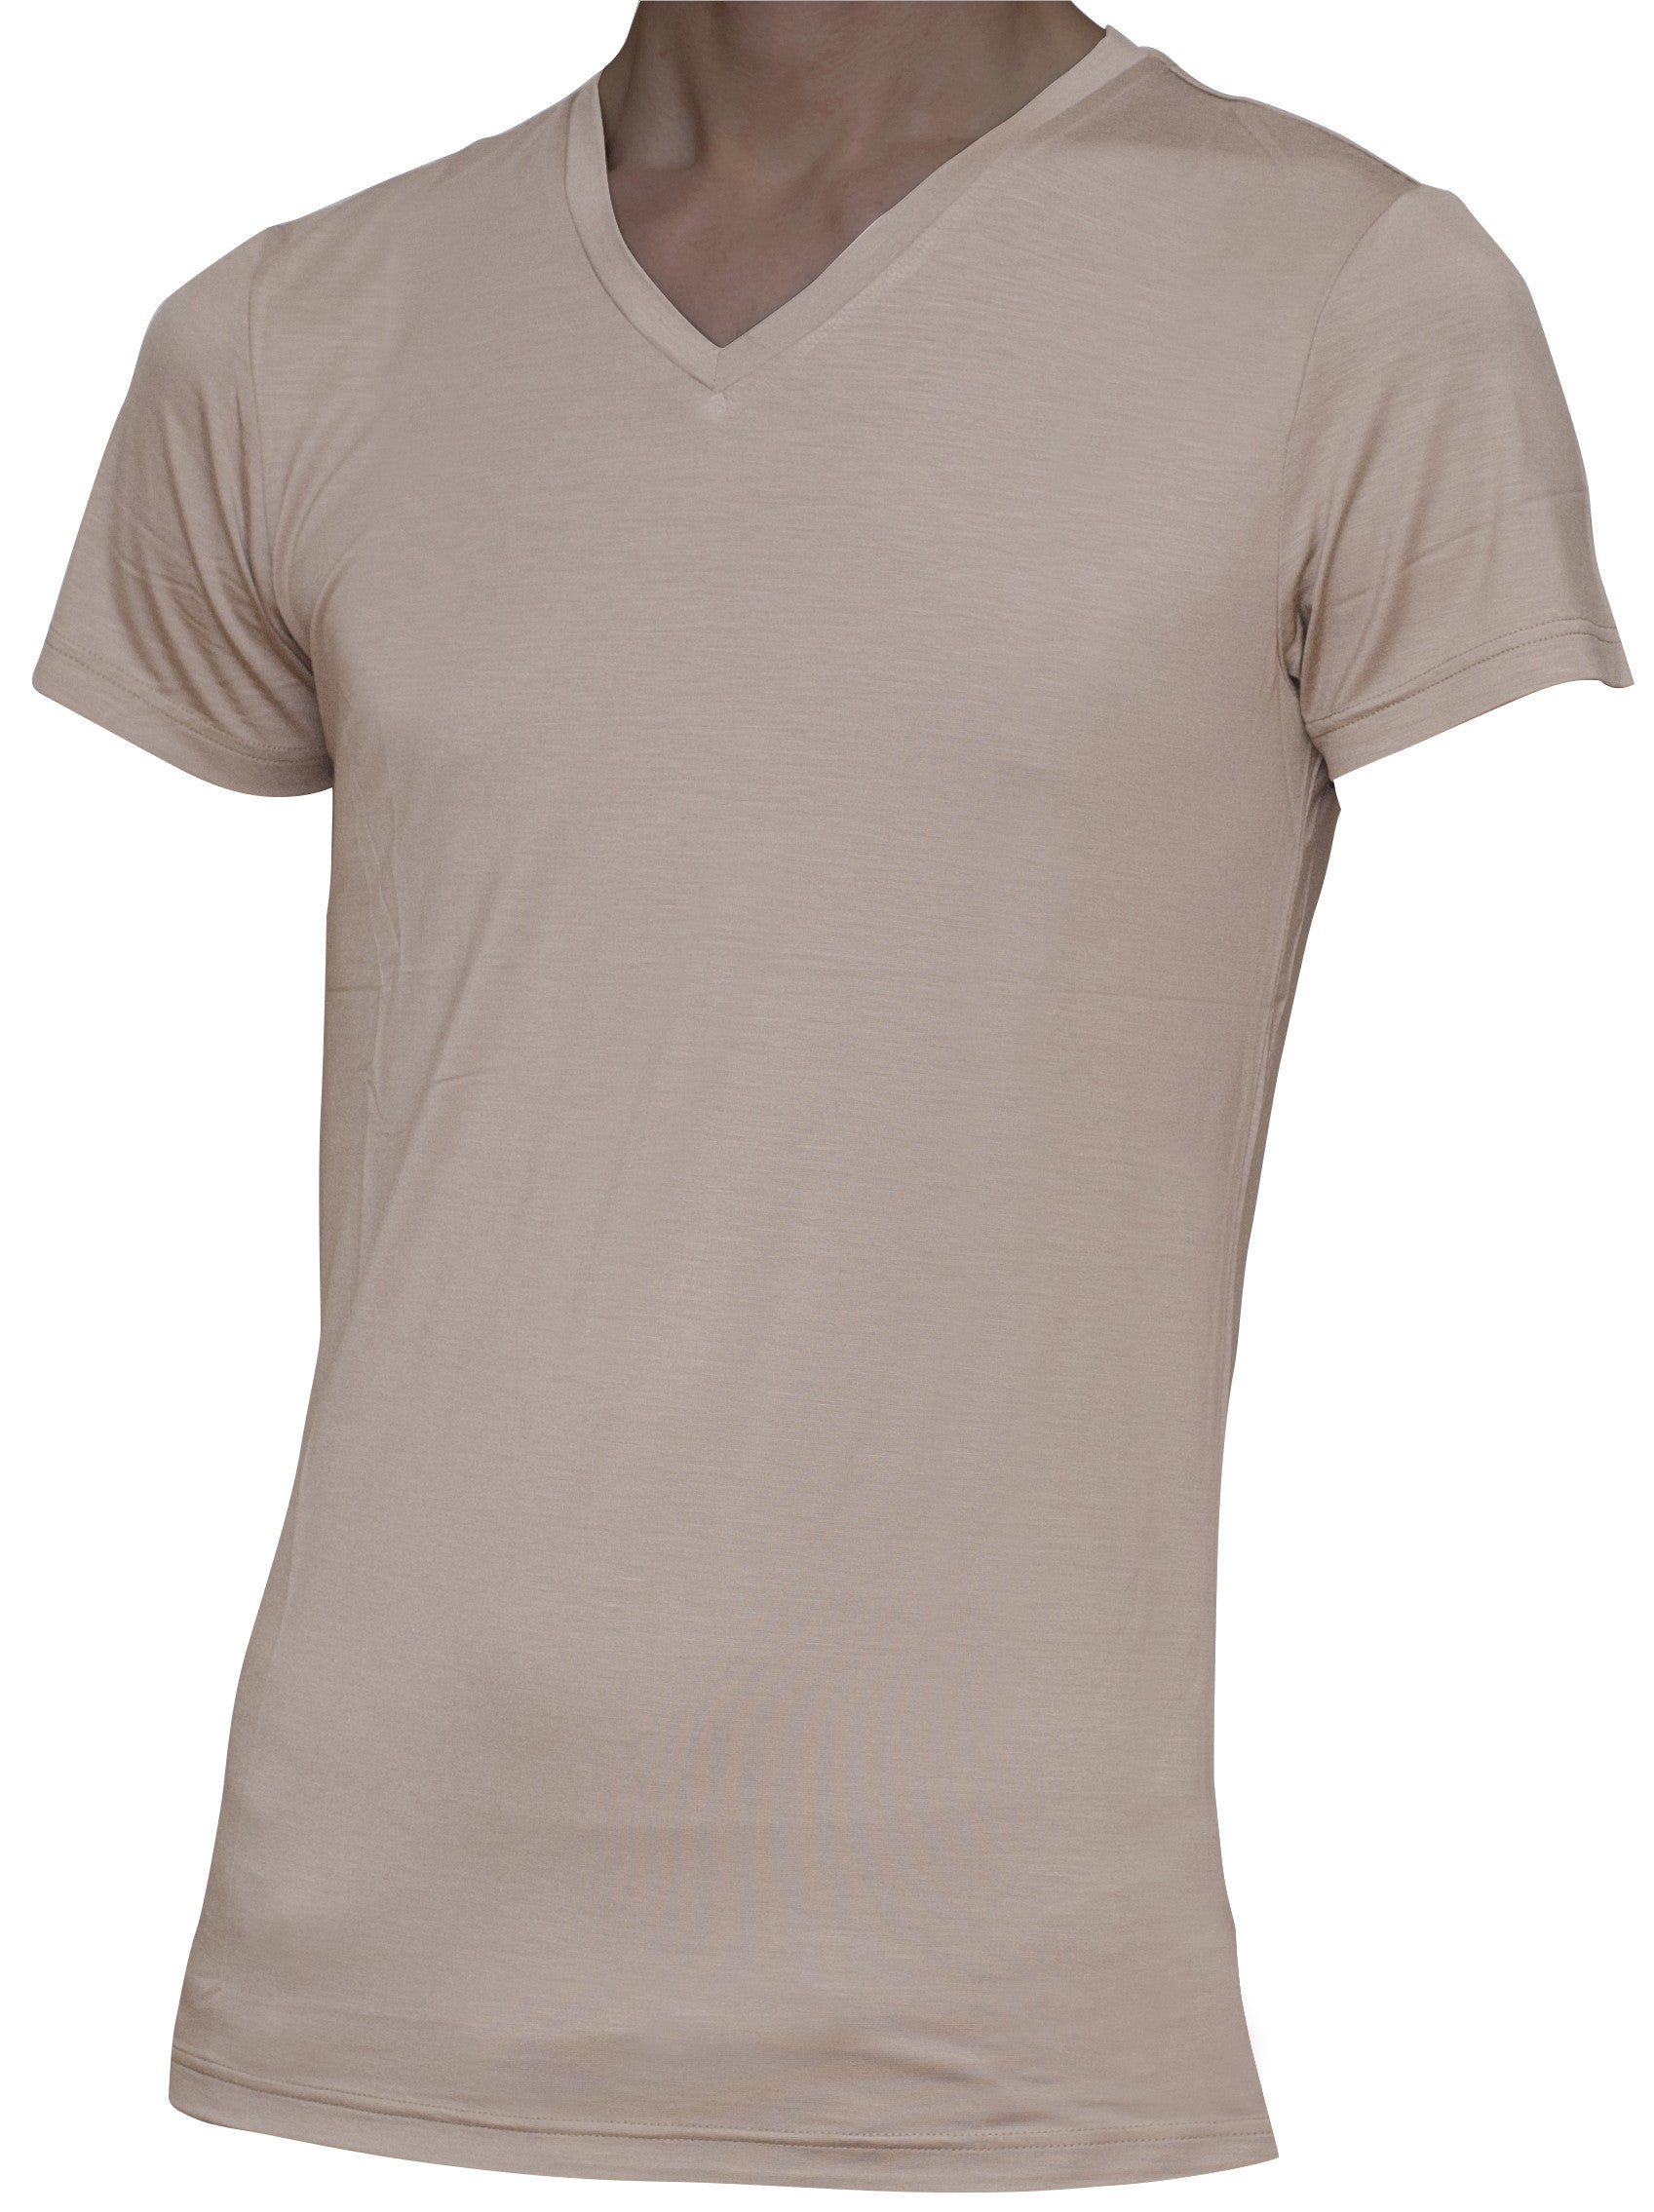 Men's Extra Long Slim-Fit V-Neck Undershirts